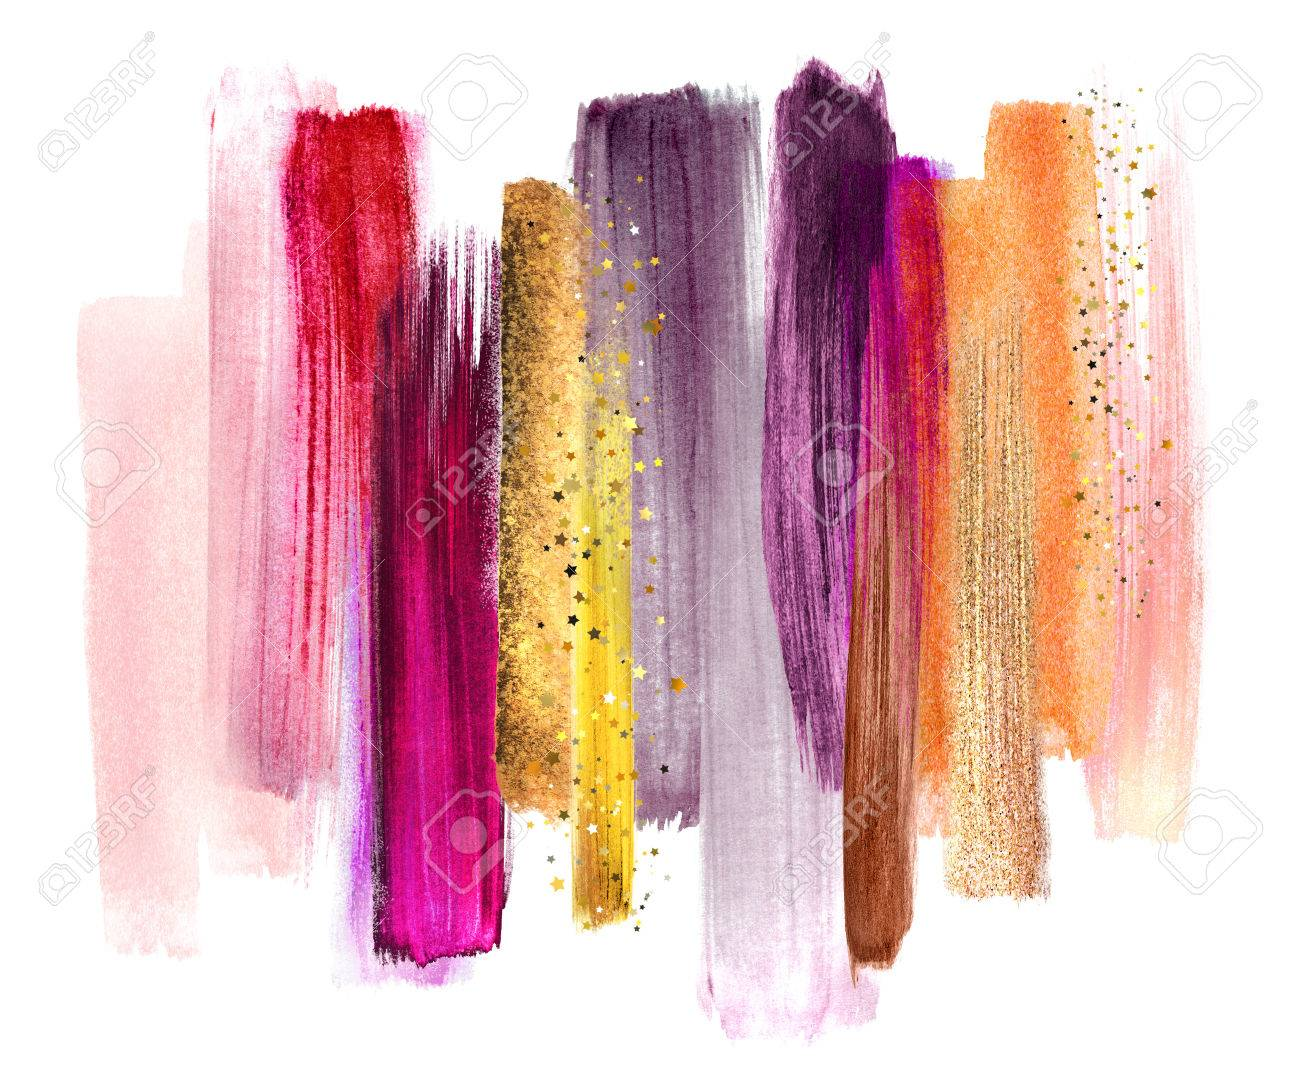 abstract watercolor brush strokes, creative illustration, artistic color palette, fuchsia red gold - 77079944